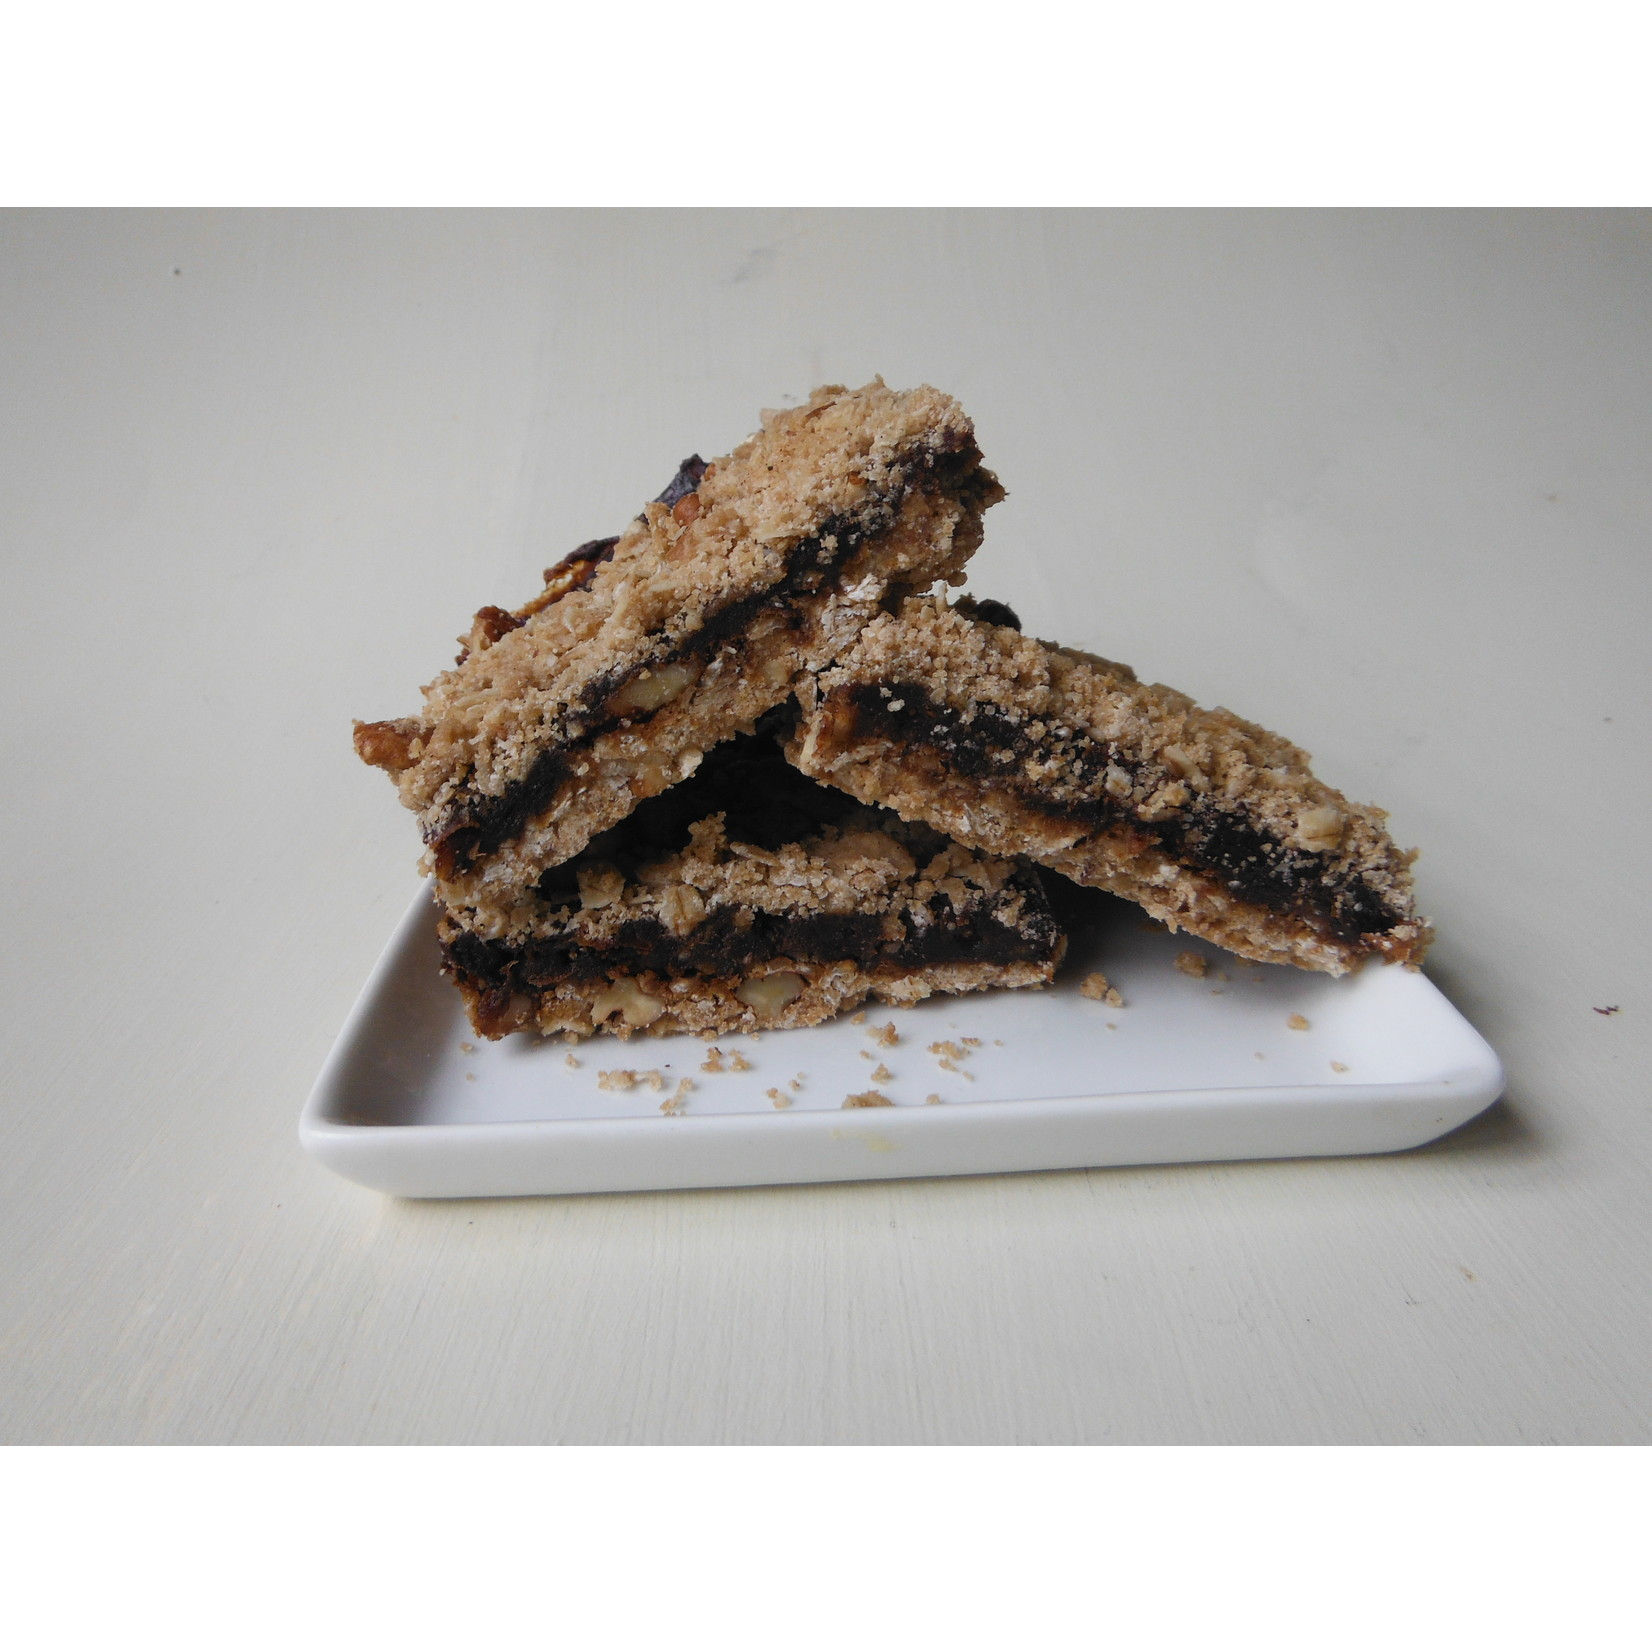 Moroccan Date Squares